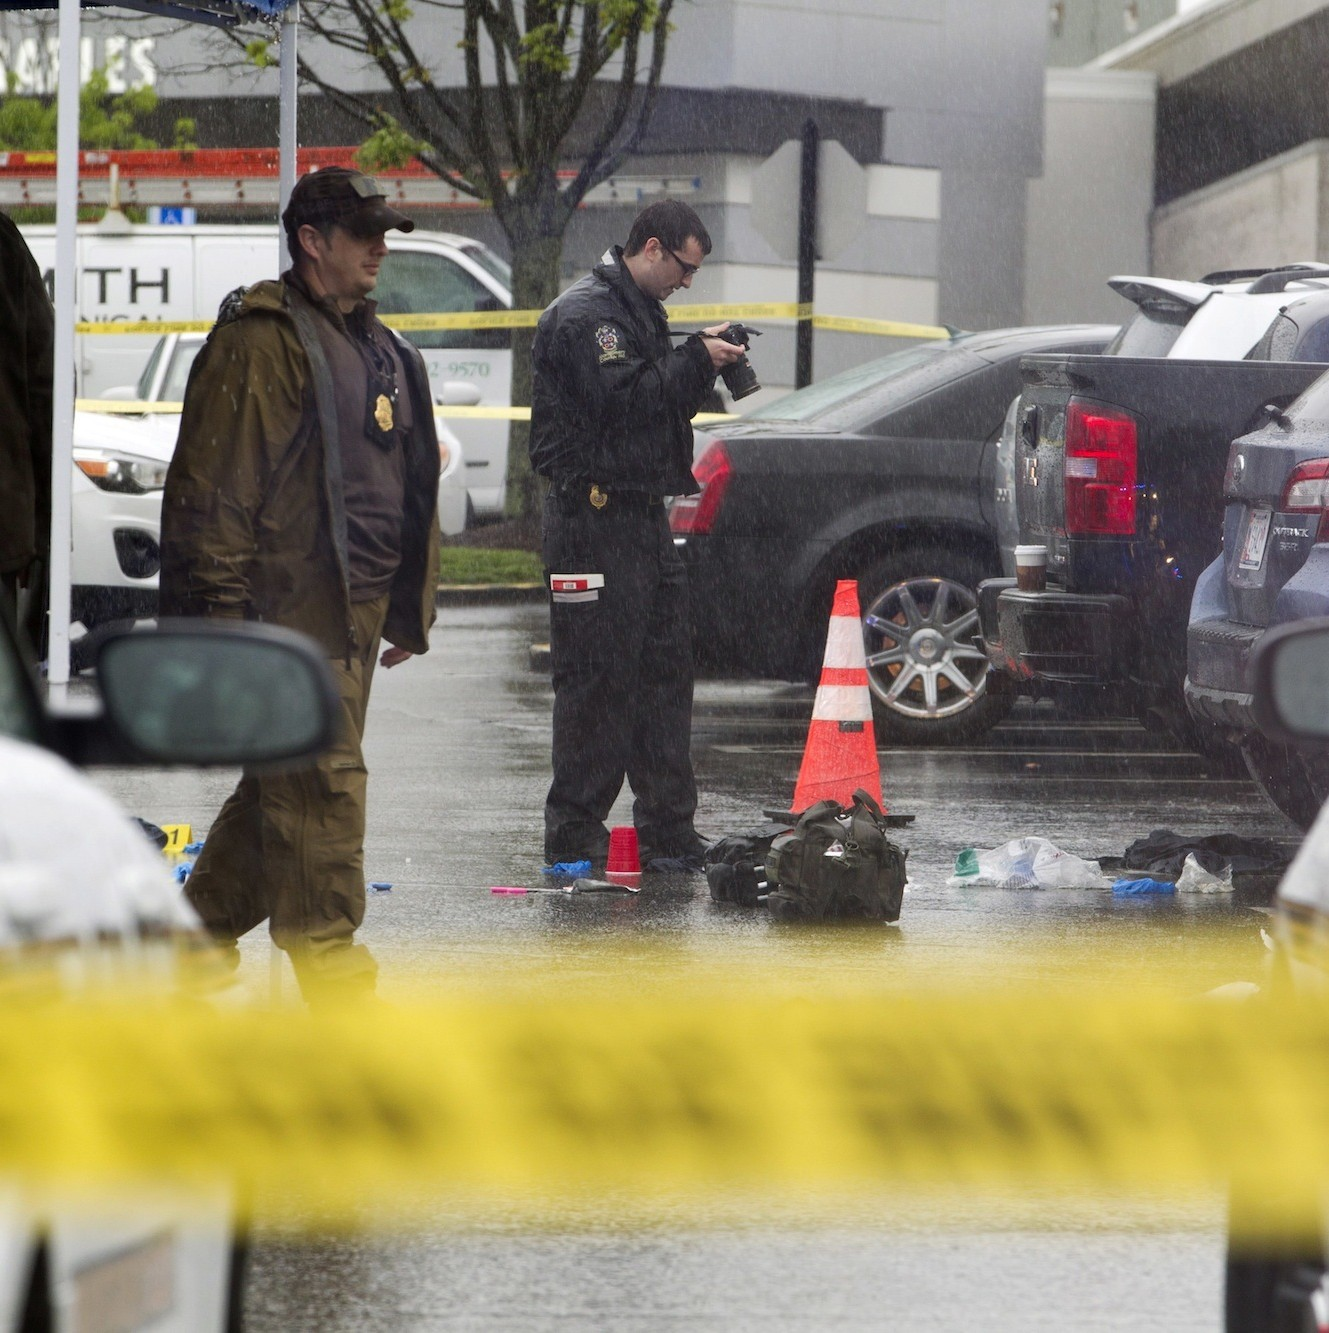 Washington Dc Shooting: Police Capture Federal Agent Suspected Of Killing Three In